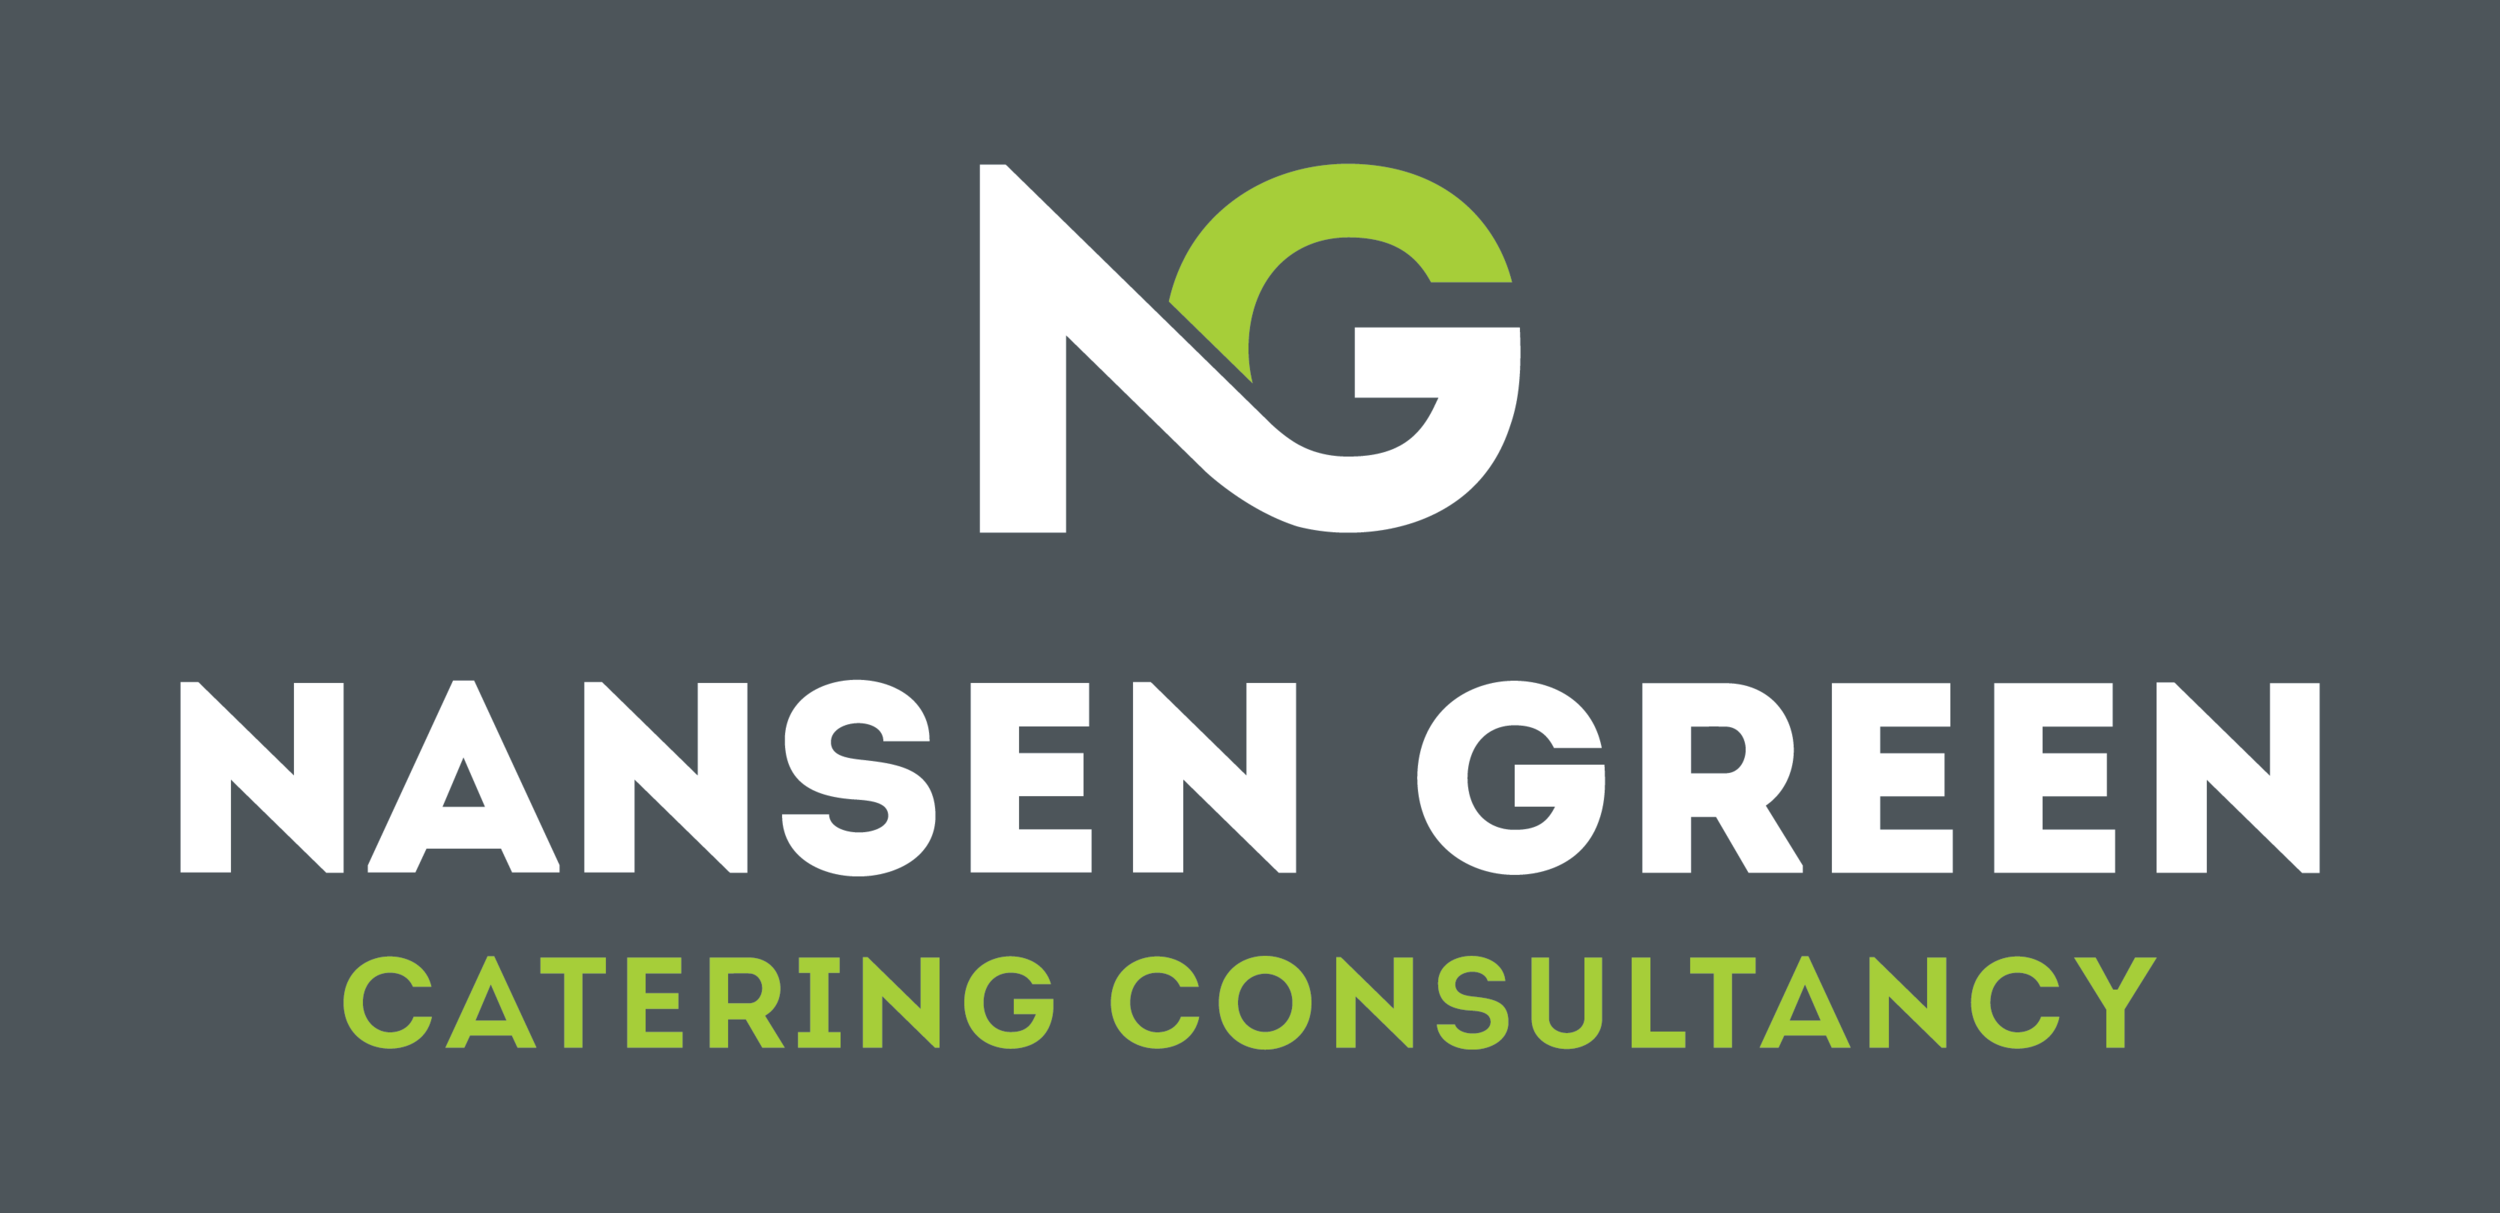 Nansen Green Catering Consultancy How To Get A Five Star